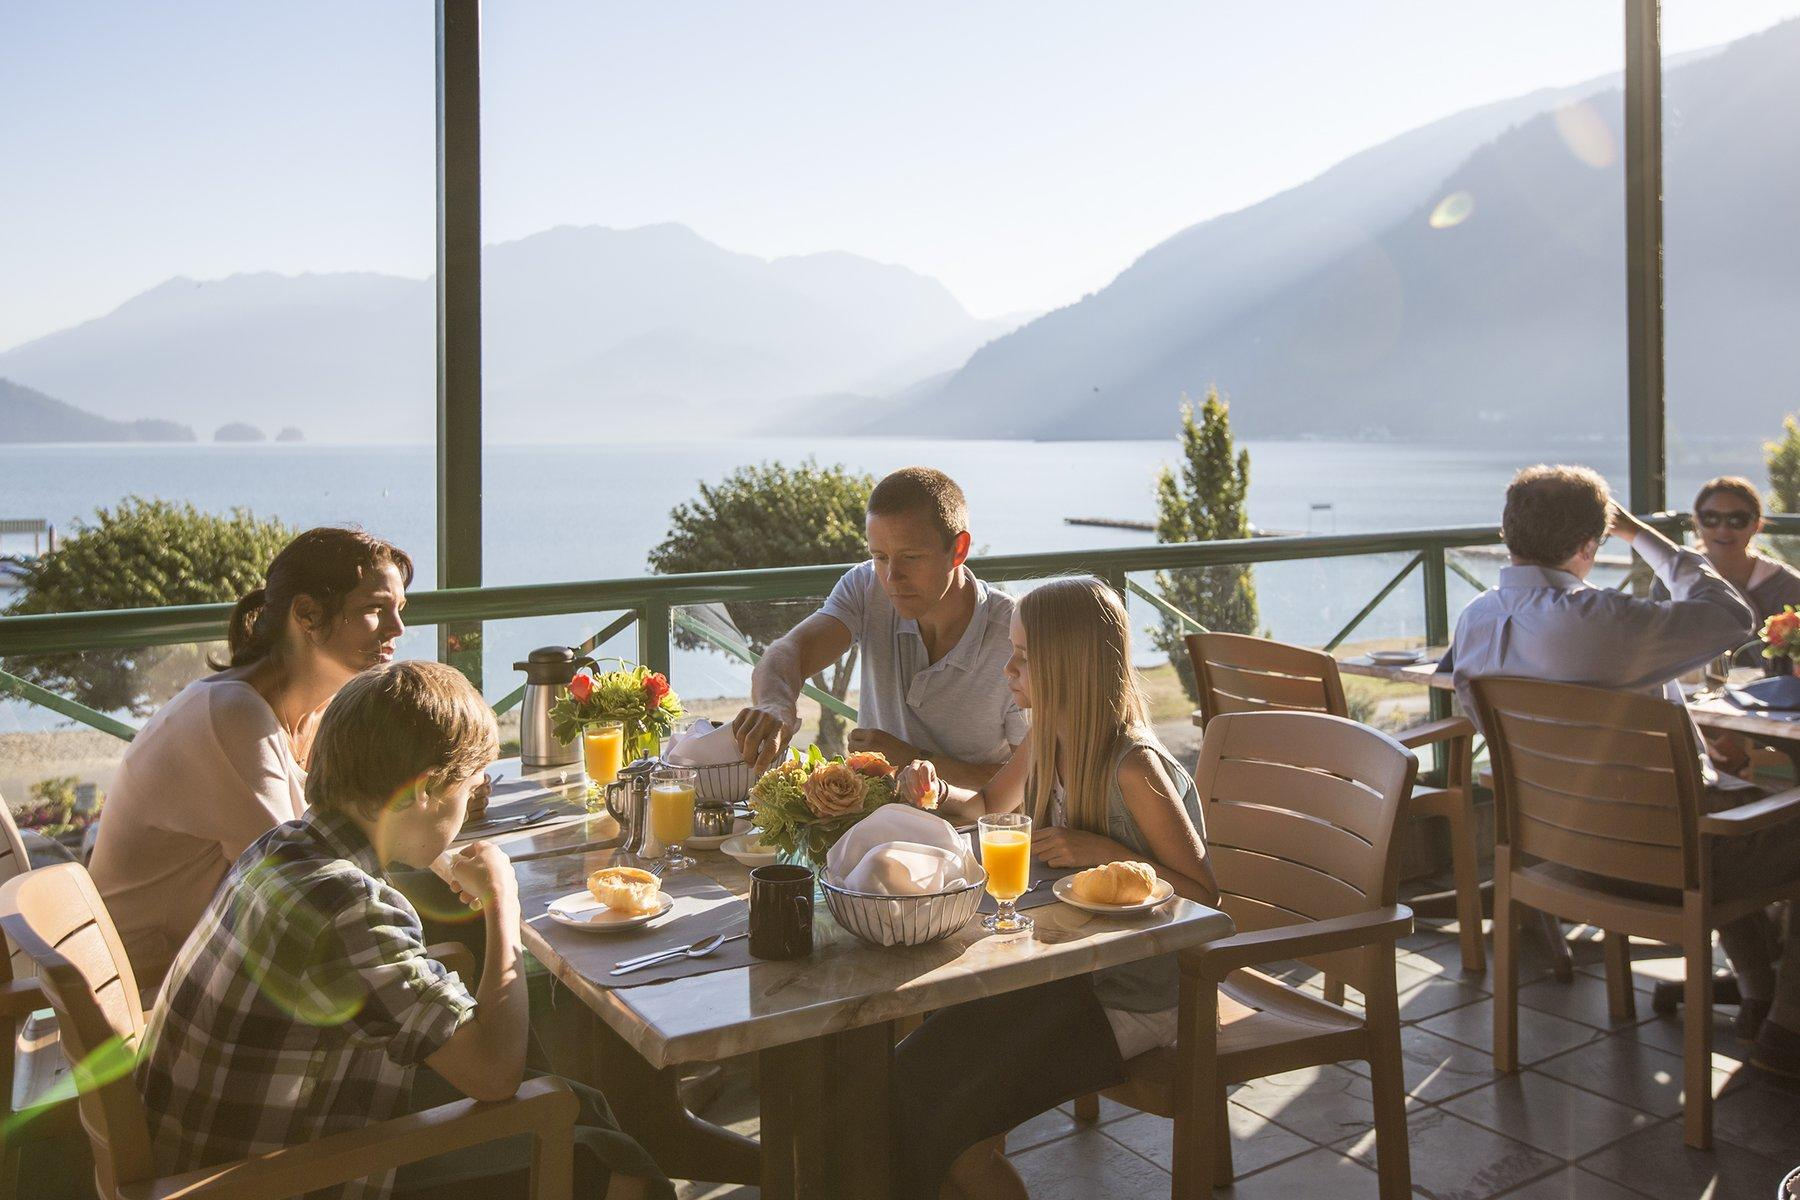 Family eating at outdoor restaurant with mountain and lake views